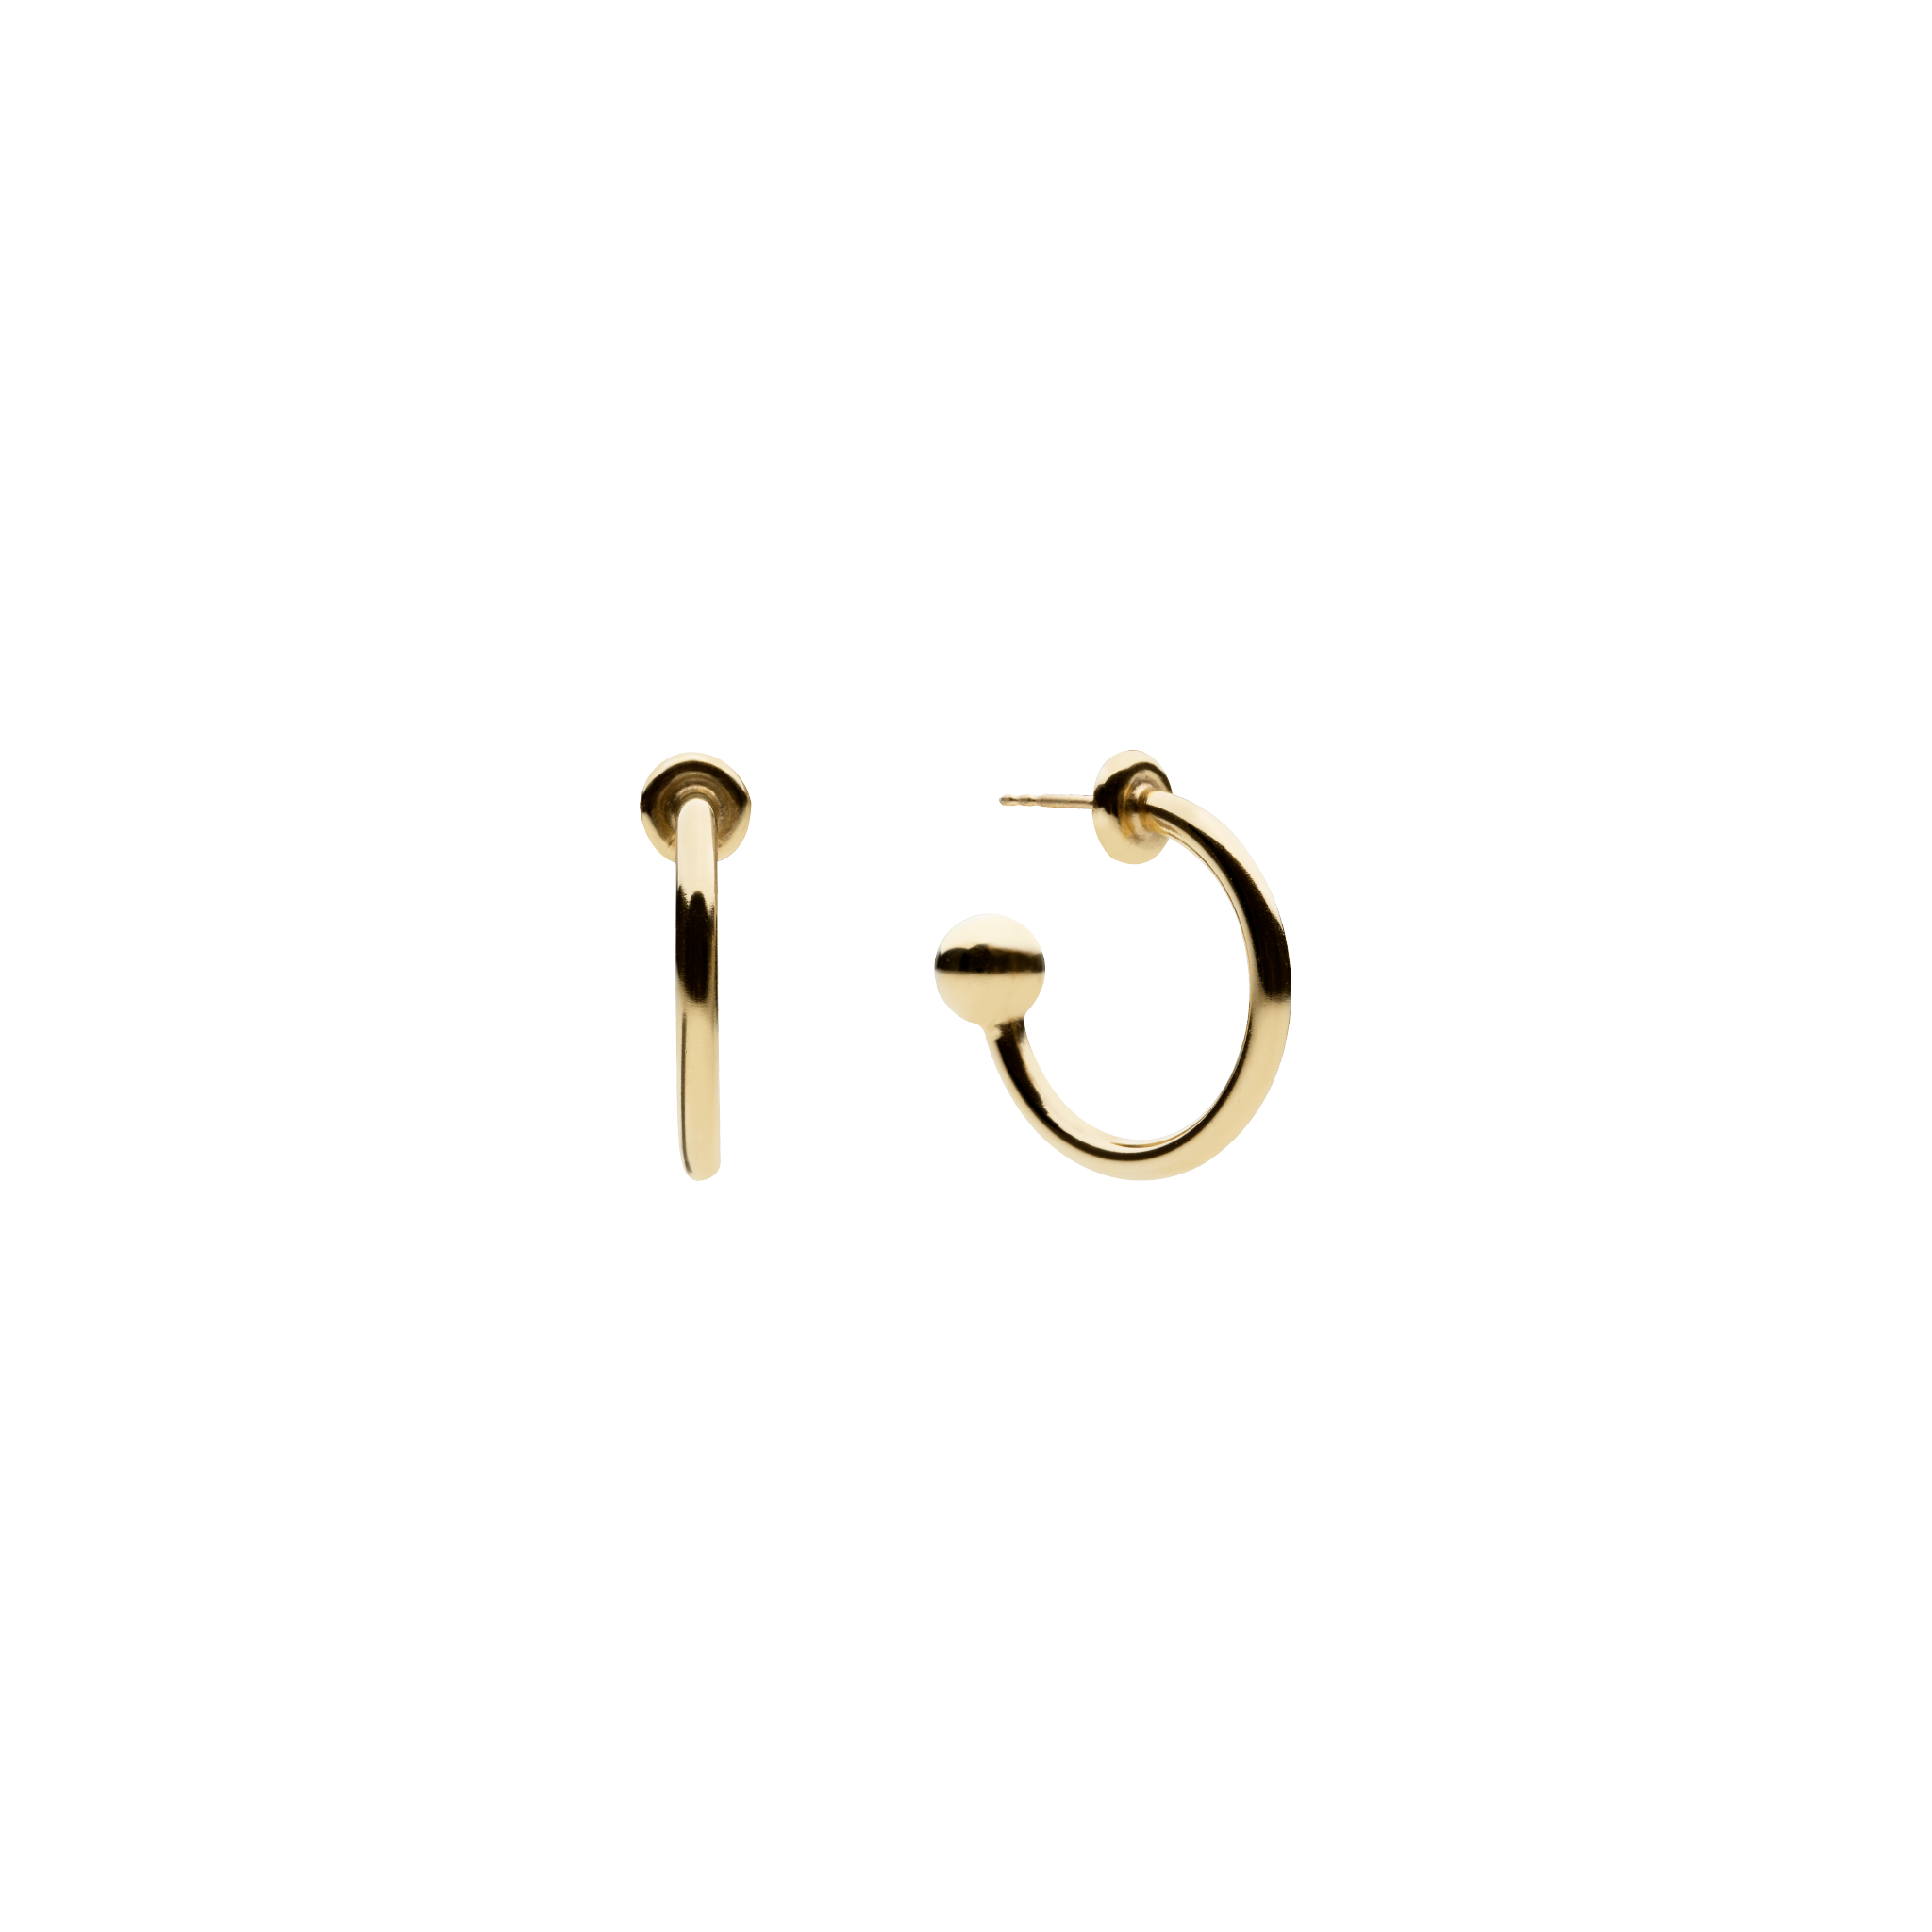 Petite Ball Hoop Gold Earrings - 14K